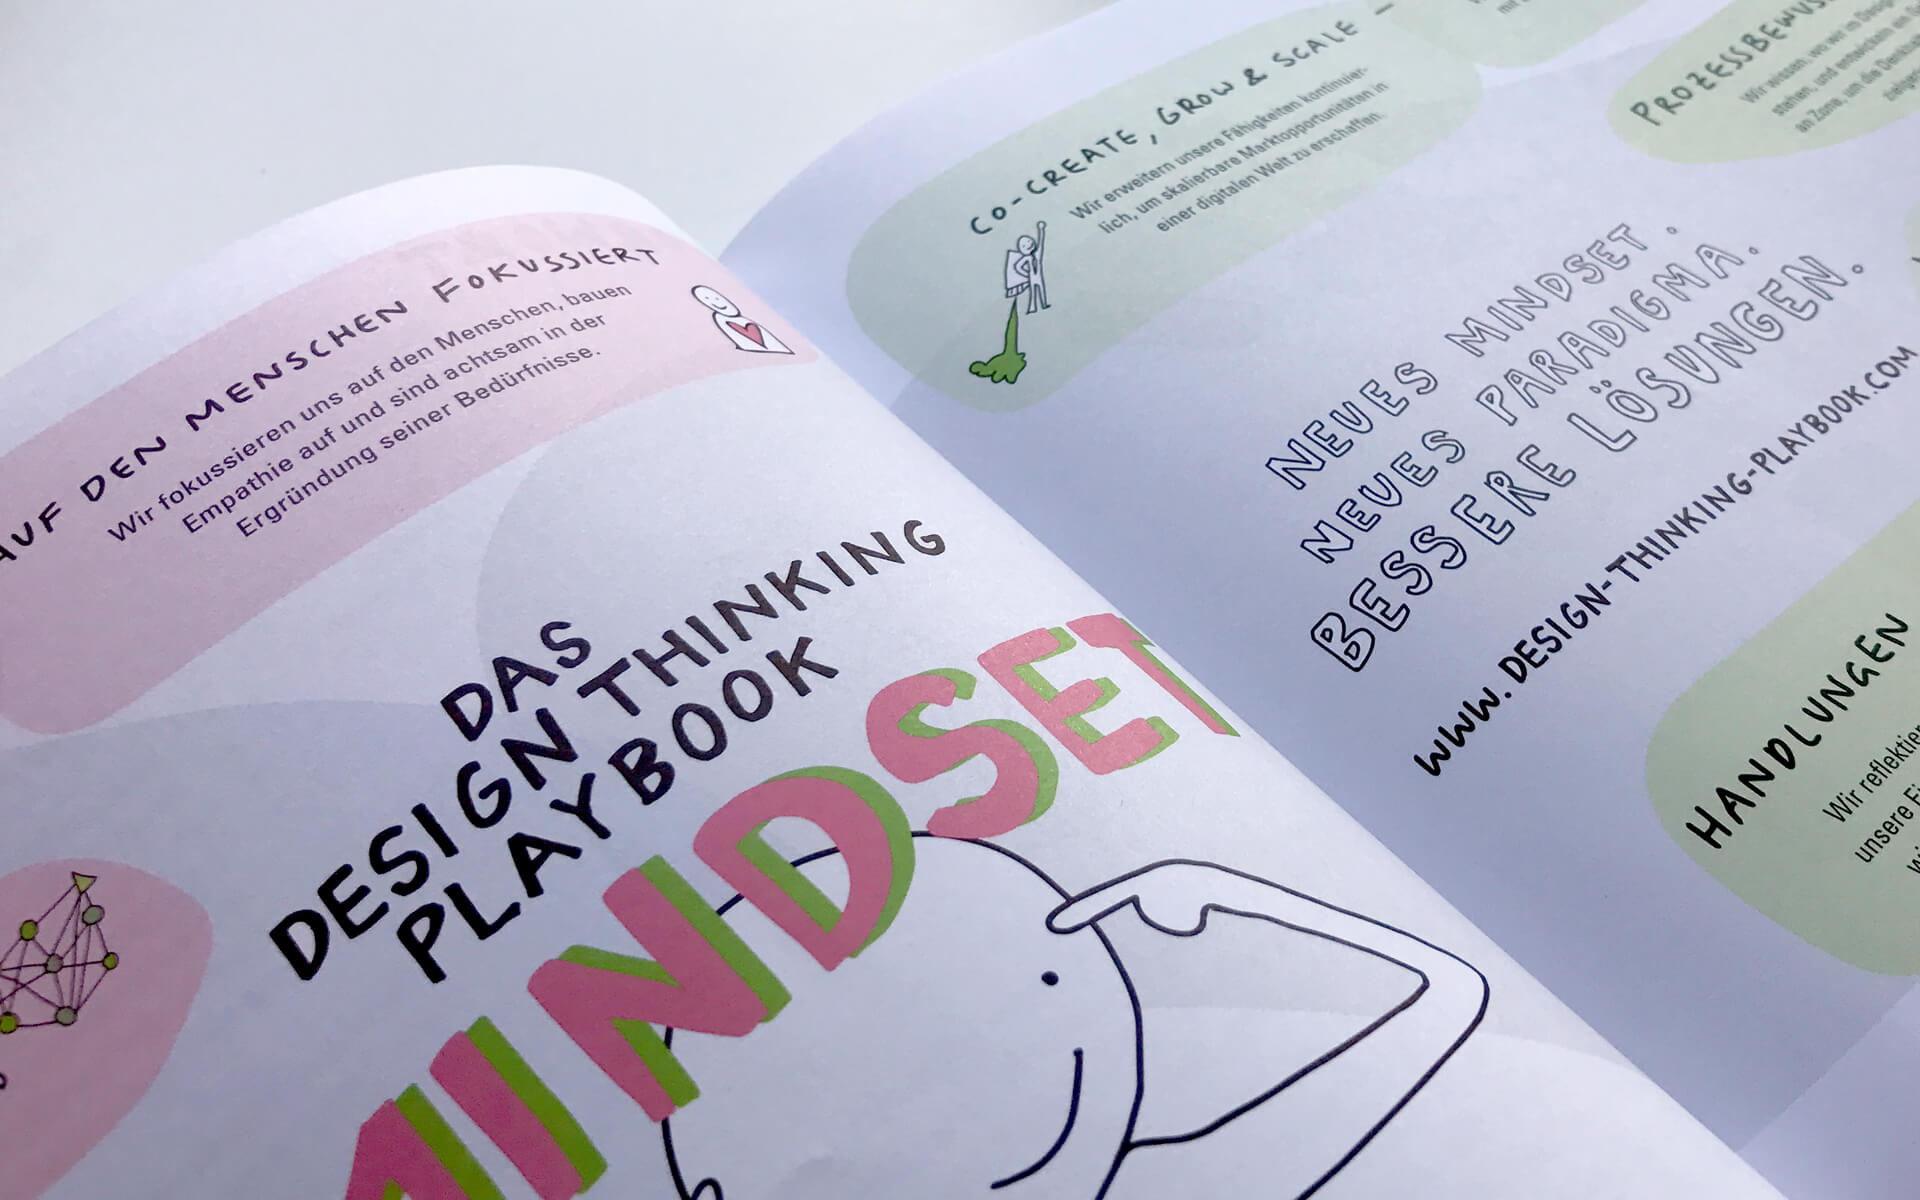 matter of design, Buch-Review, Das Design Thinking Playbook, Beispielseite